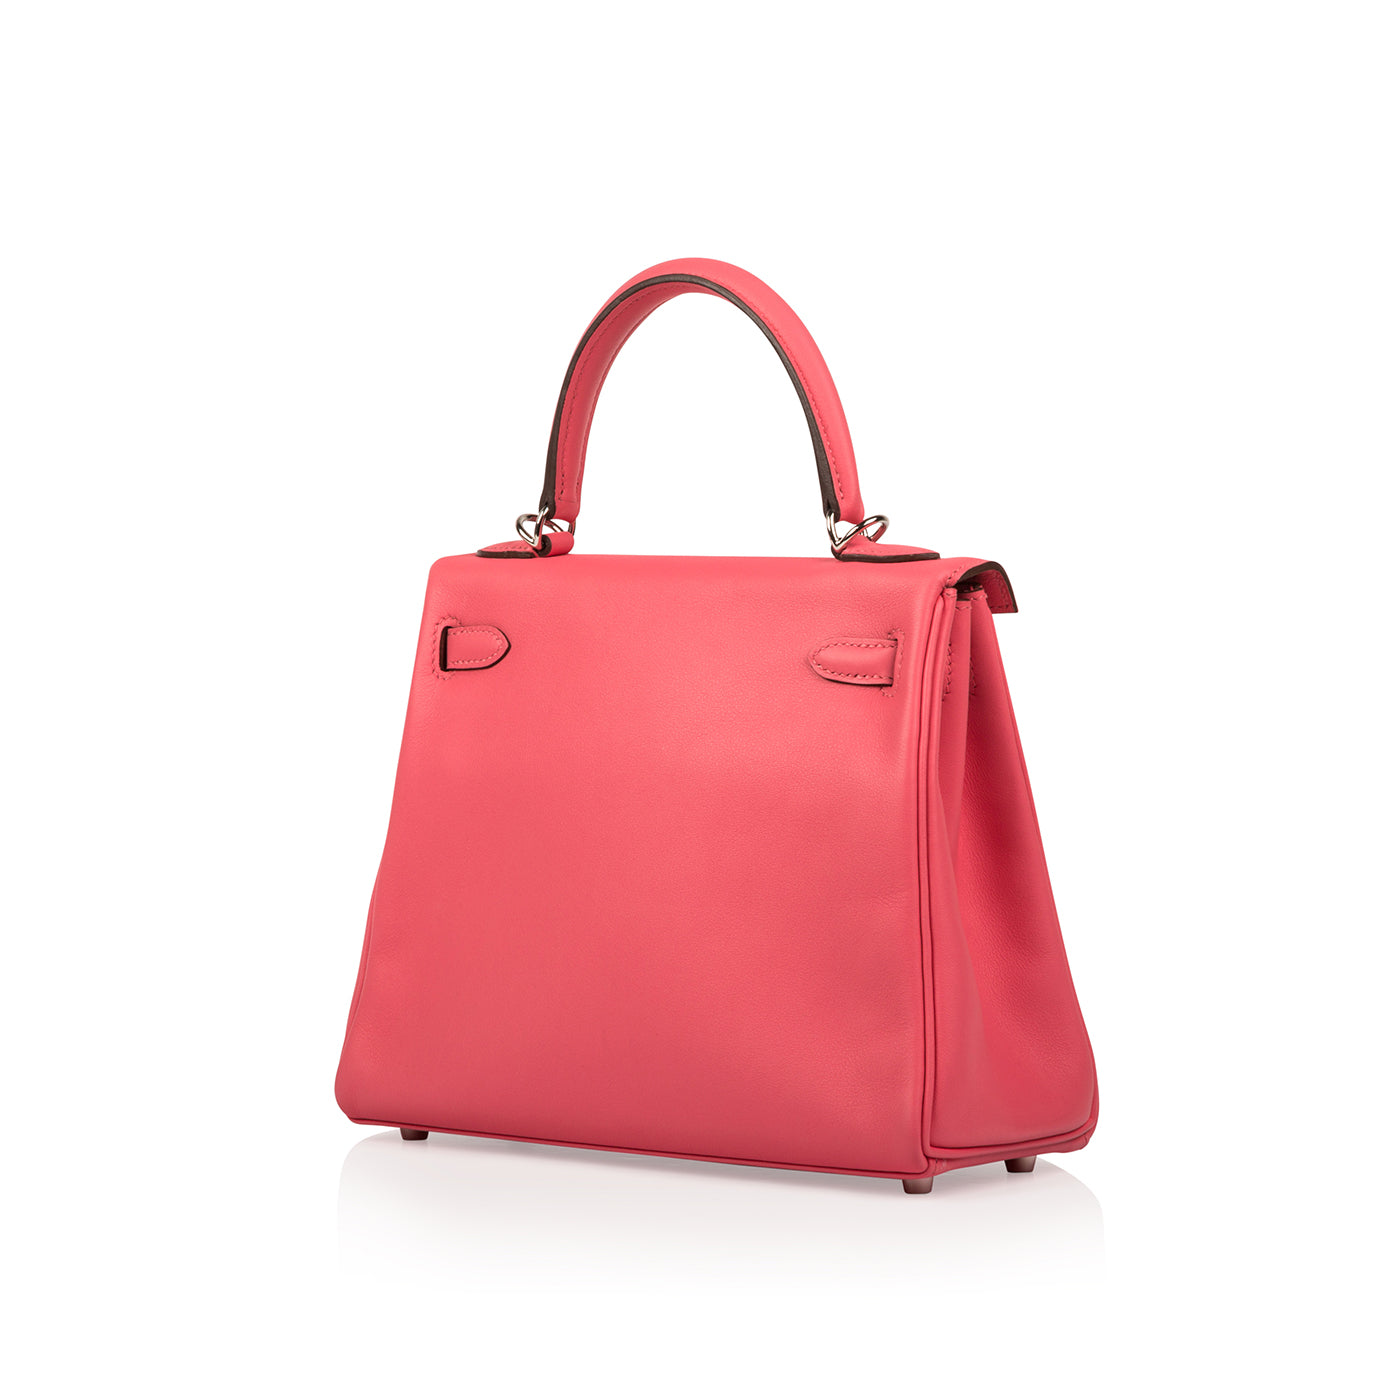 b1920ade8a51 Hermès - Kelly 25 - Rose Azalee Swift - Palladium Hardware - New ...